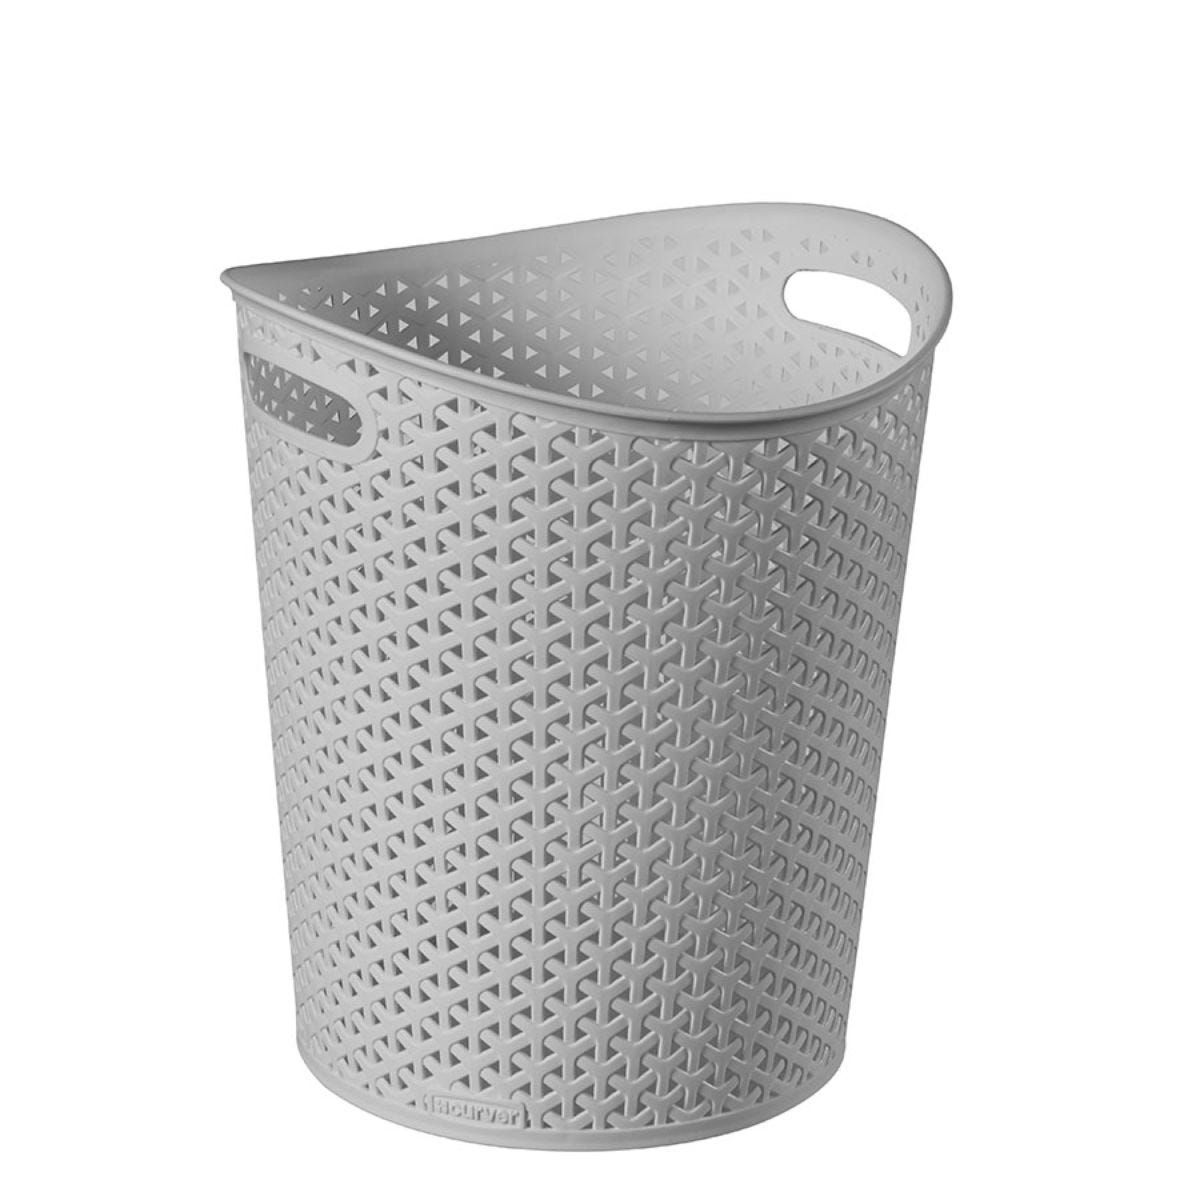 Curver My Style 13L Waste Paper Bin - Grey